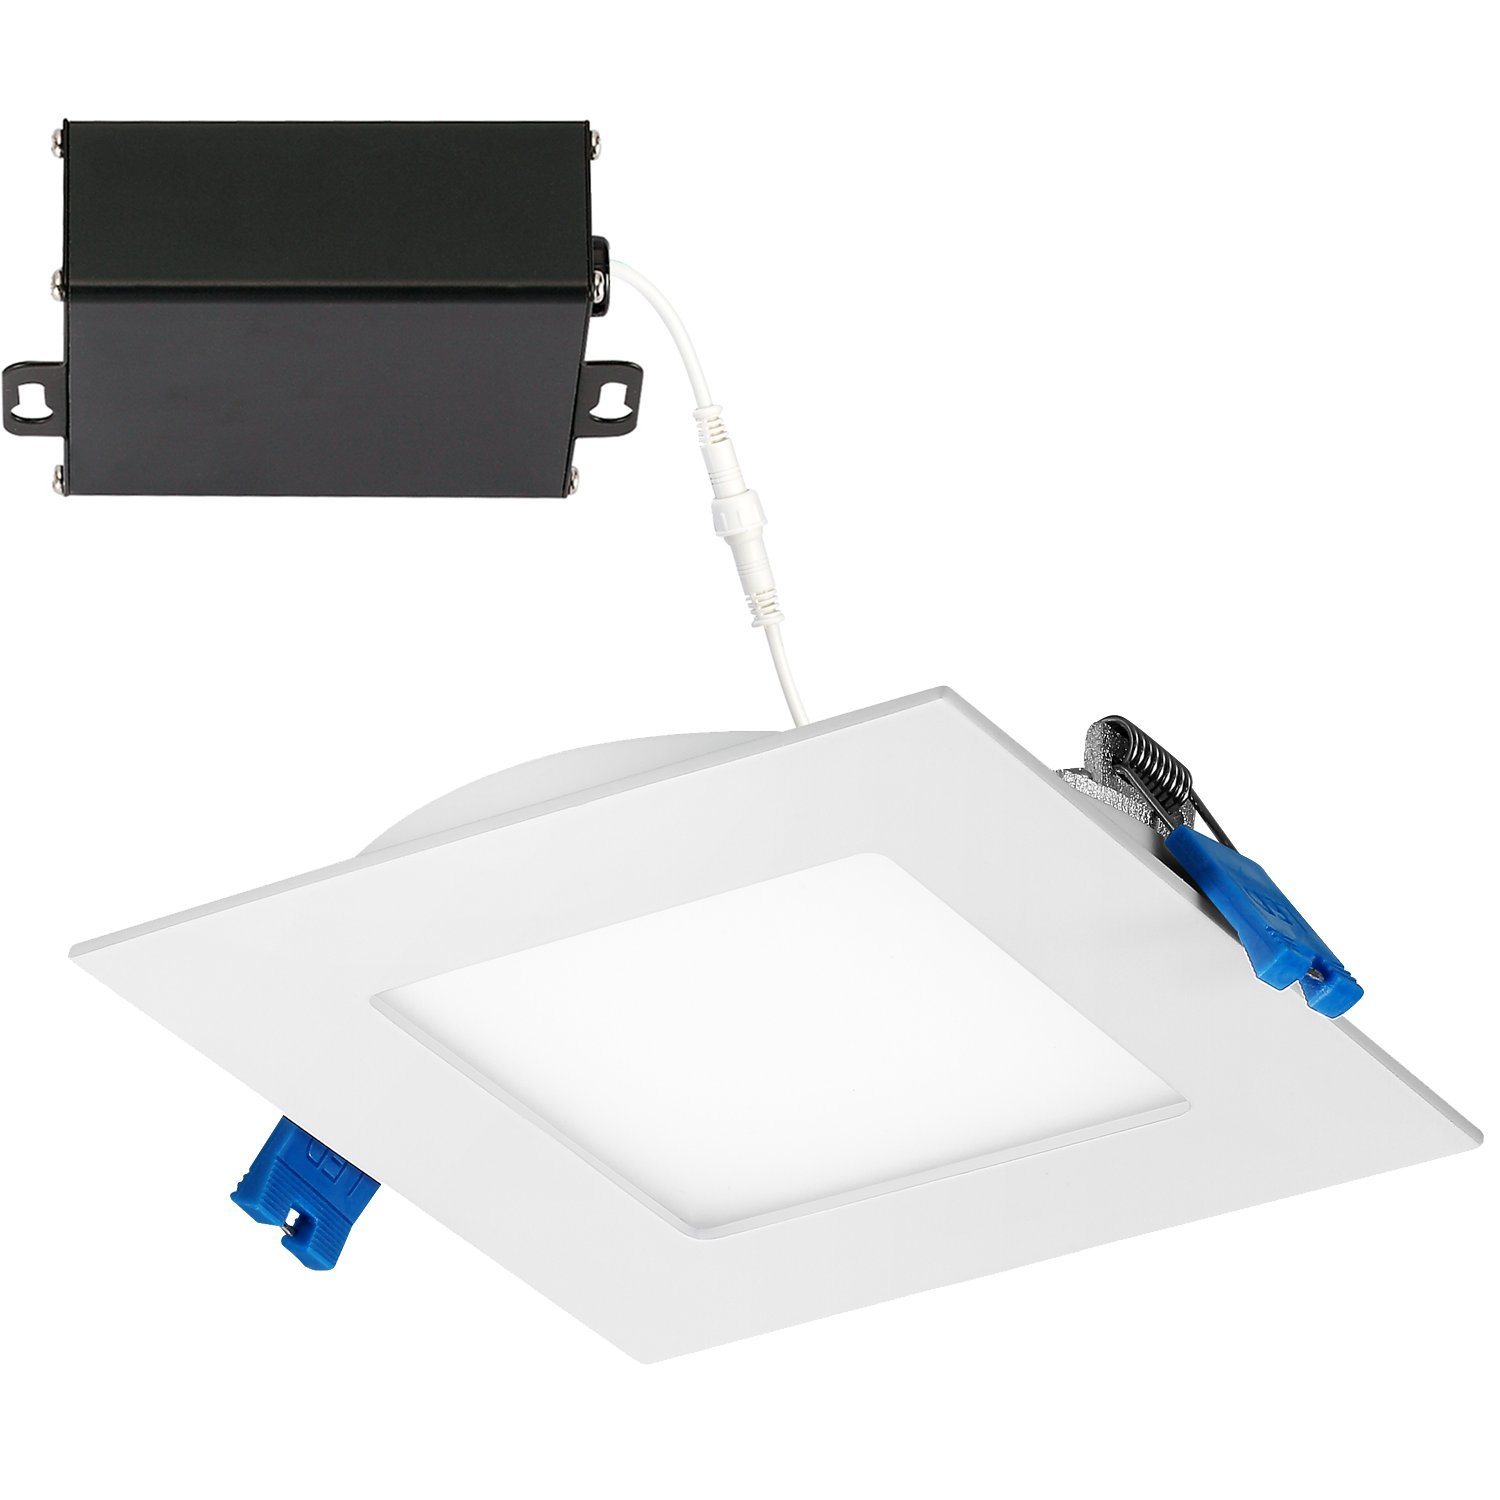 GetInLight Slim Dimmable 4 Inch LED Recessed Lighting, Square Ceiling Panel, Junction Box Included, 4000K(Bright White), 9W, 600lm, White Finished, cETLus Listed, IN-0308-1-WH-40